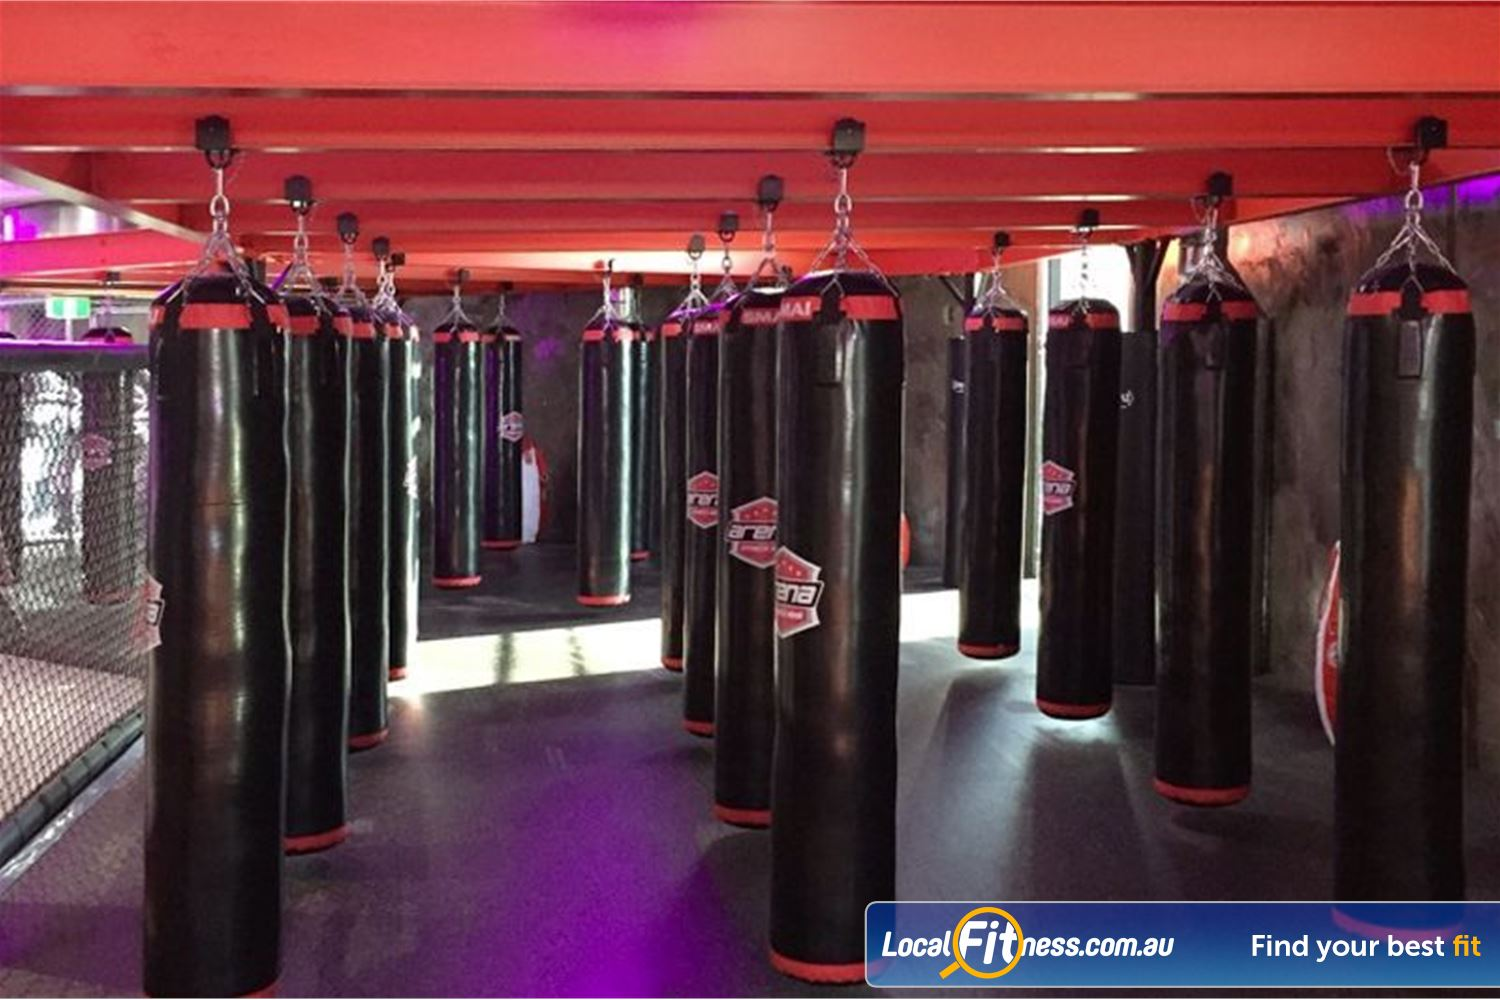 Goodlife Health Clubs Near Meadowbrook Fully equipped Springwood boxing and kickboxing area.